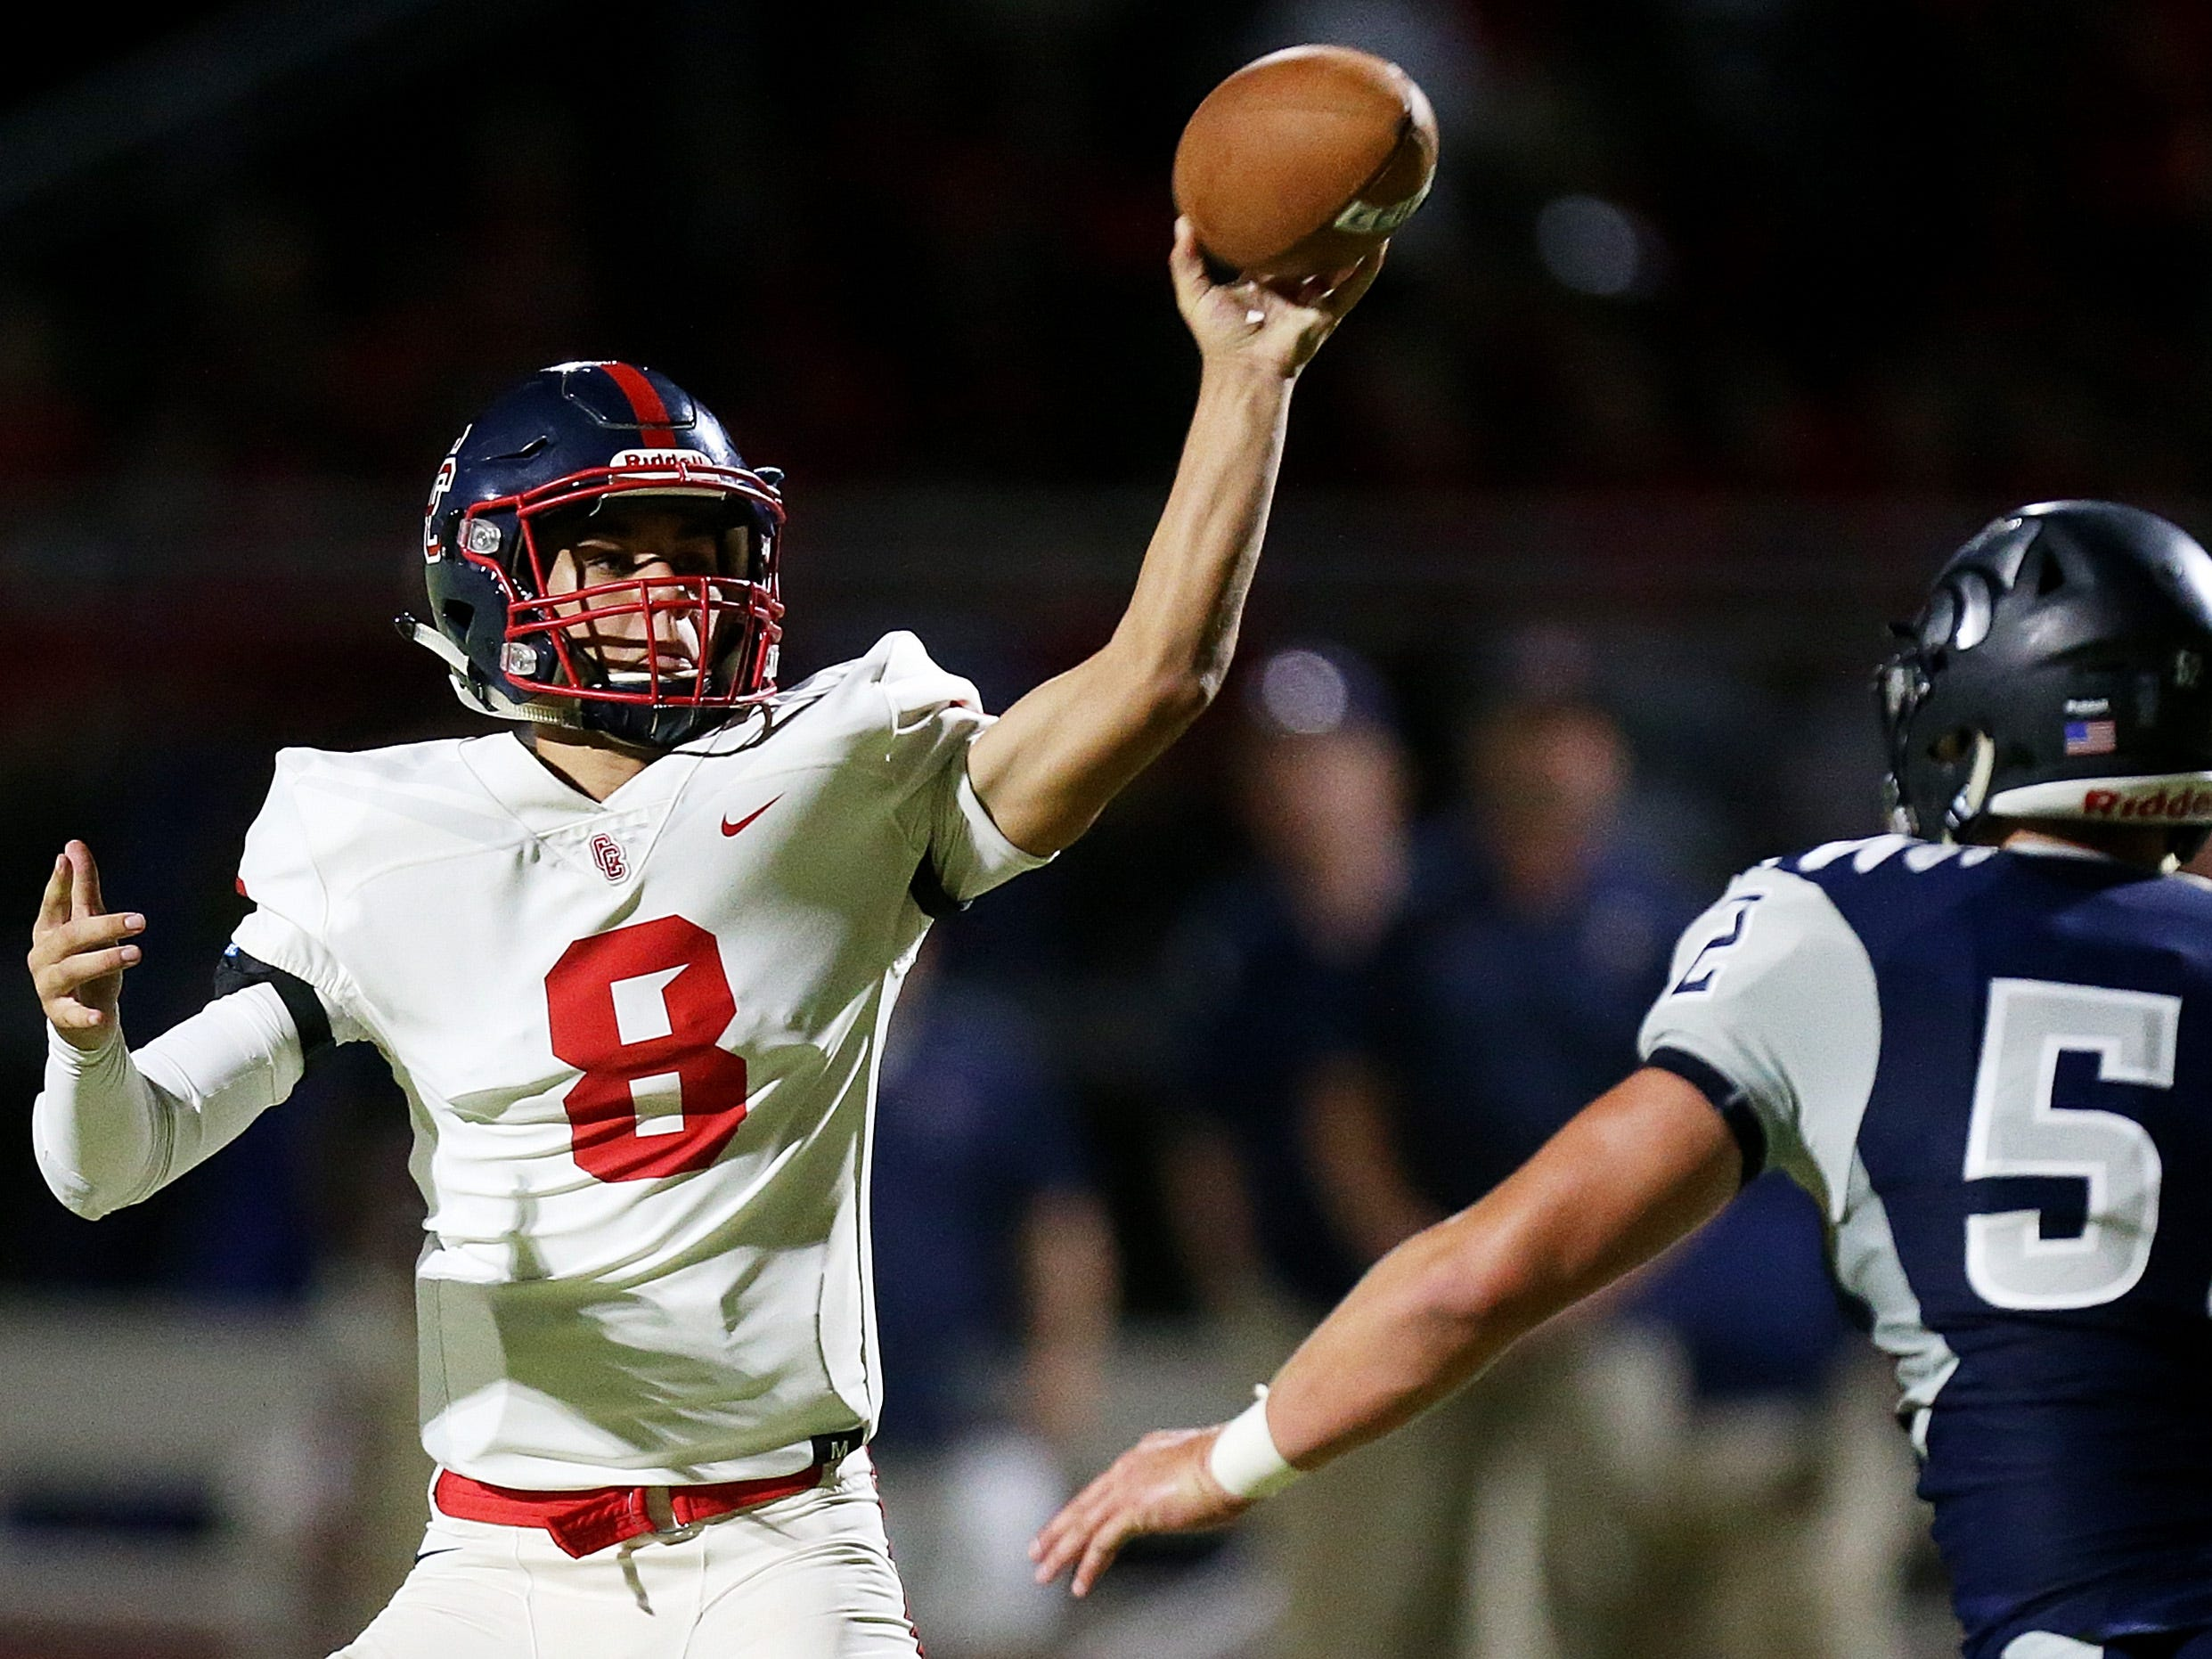 Peoria Centennial quarterback Jonathan Morris (8) dumps a pass over Ironwood Ridge's Justin McGrath (52) during the second quarter of the Ironwood Ridge vs. Peoria Centennial high school football game at Ironwood Ridge High School, 2475 W. Naranja Drive, on Sept. 14, 2018, in Oro Valley, Ariz. Centennial won 55-7.